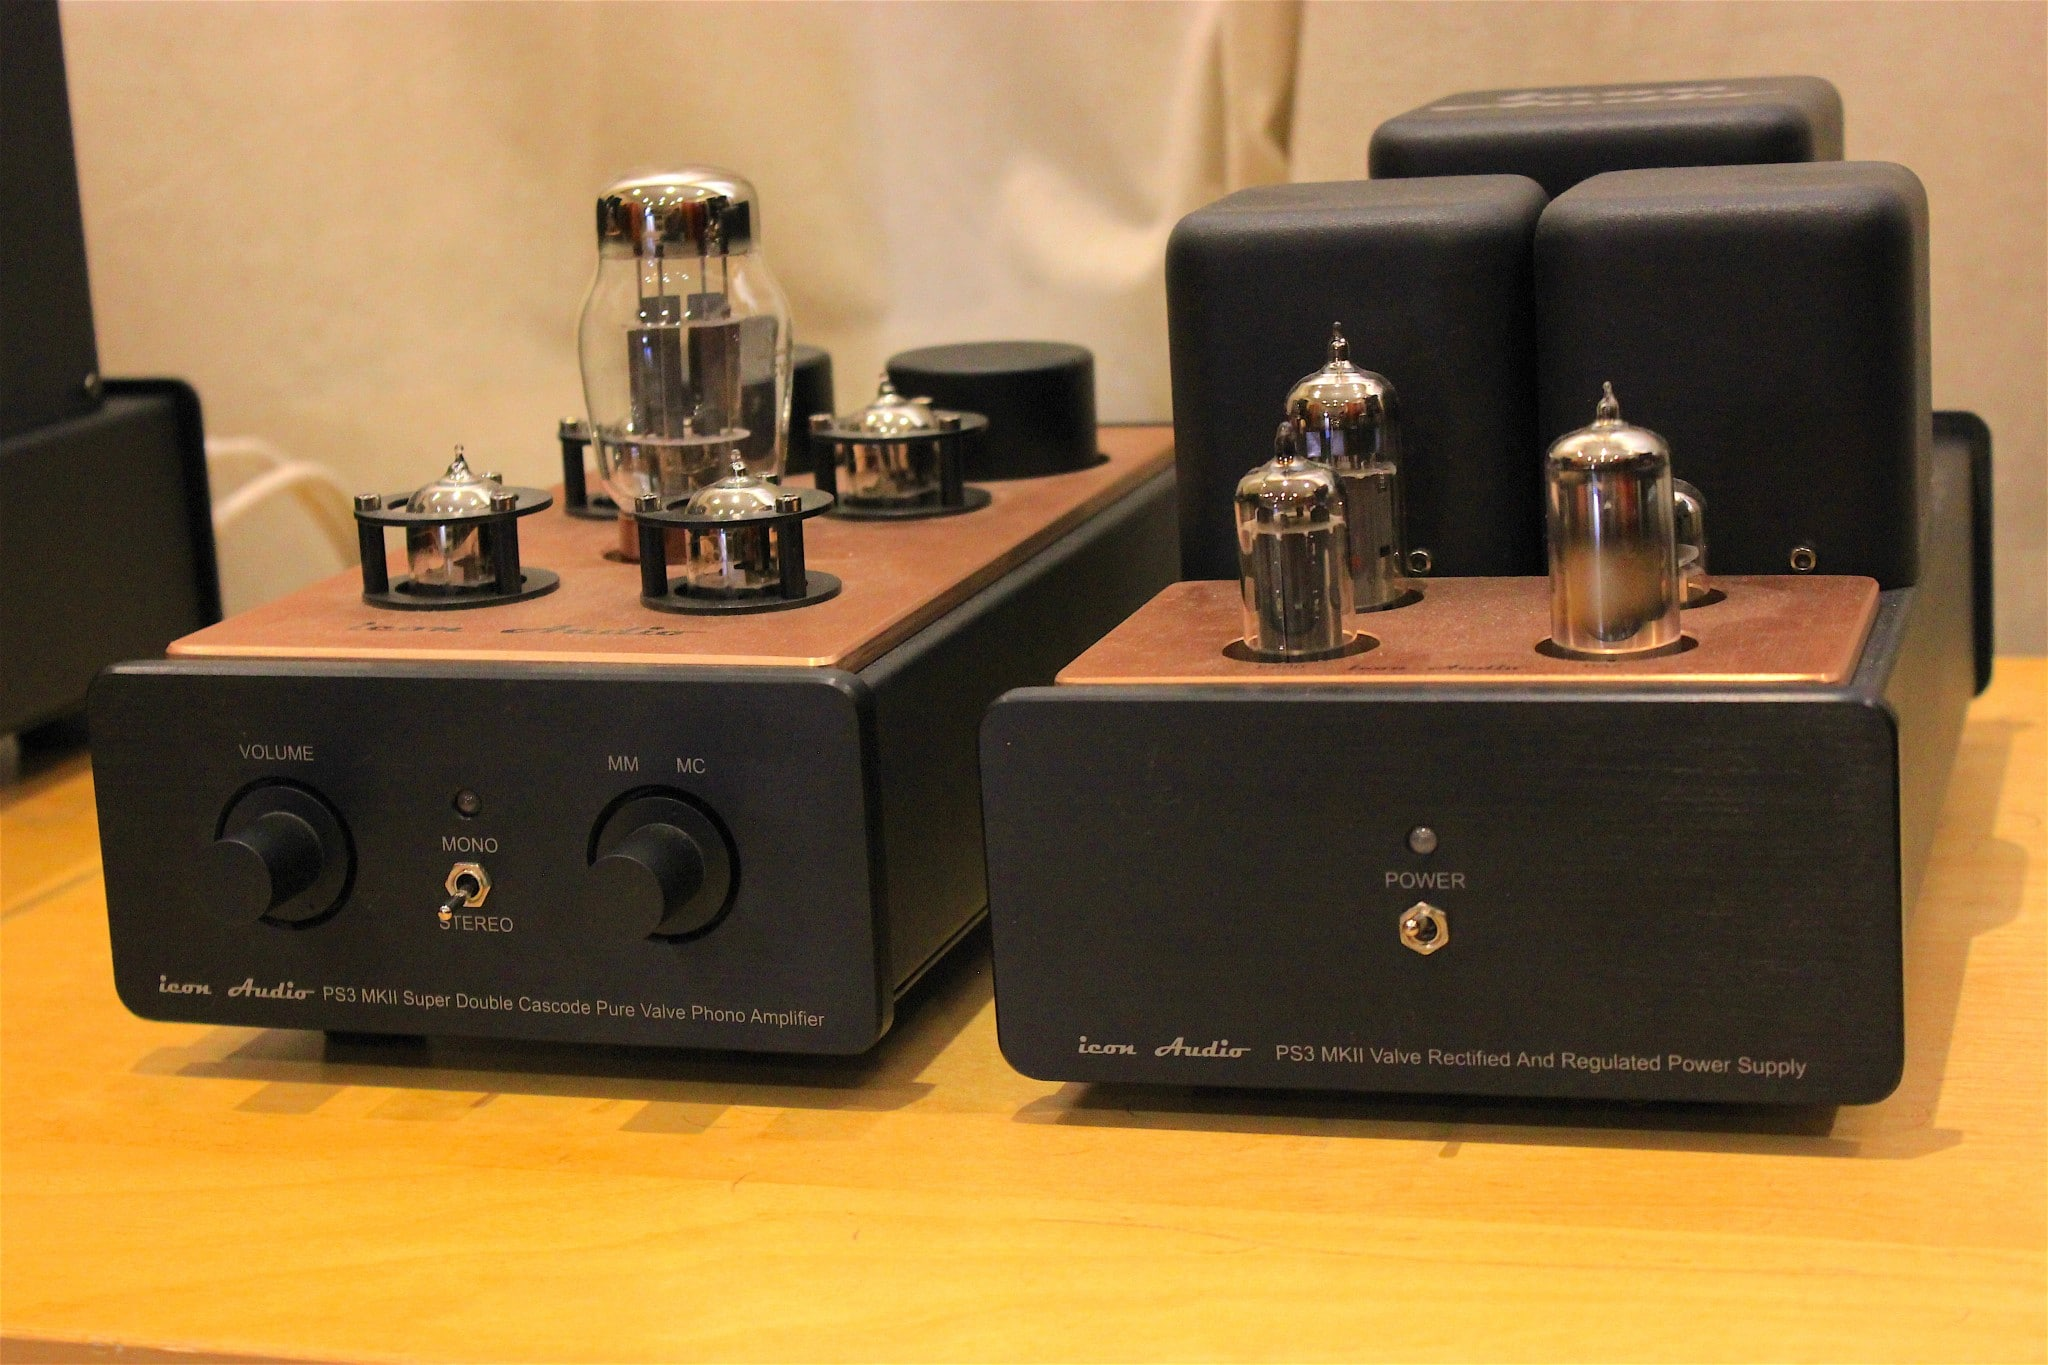 Icon Audio's Heart of Glass - The Audiophile Man